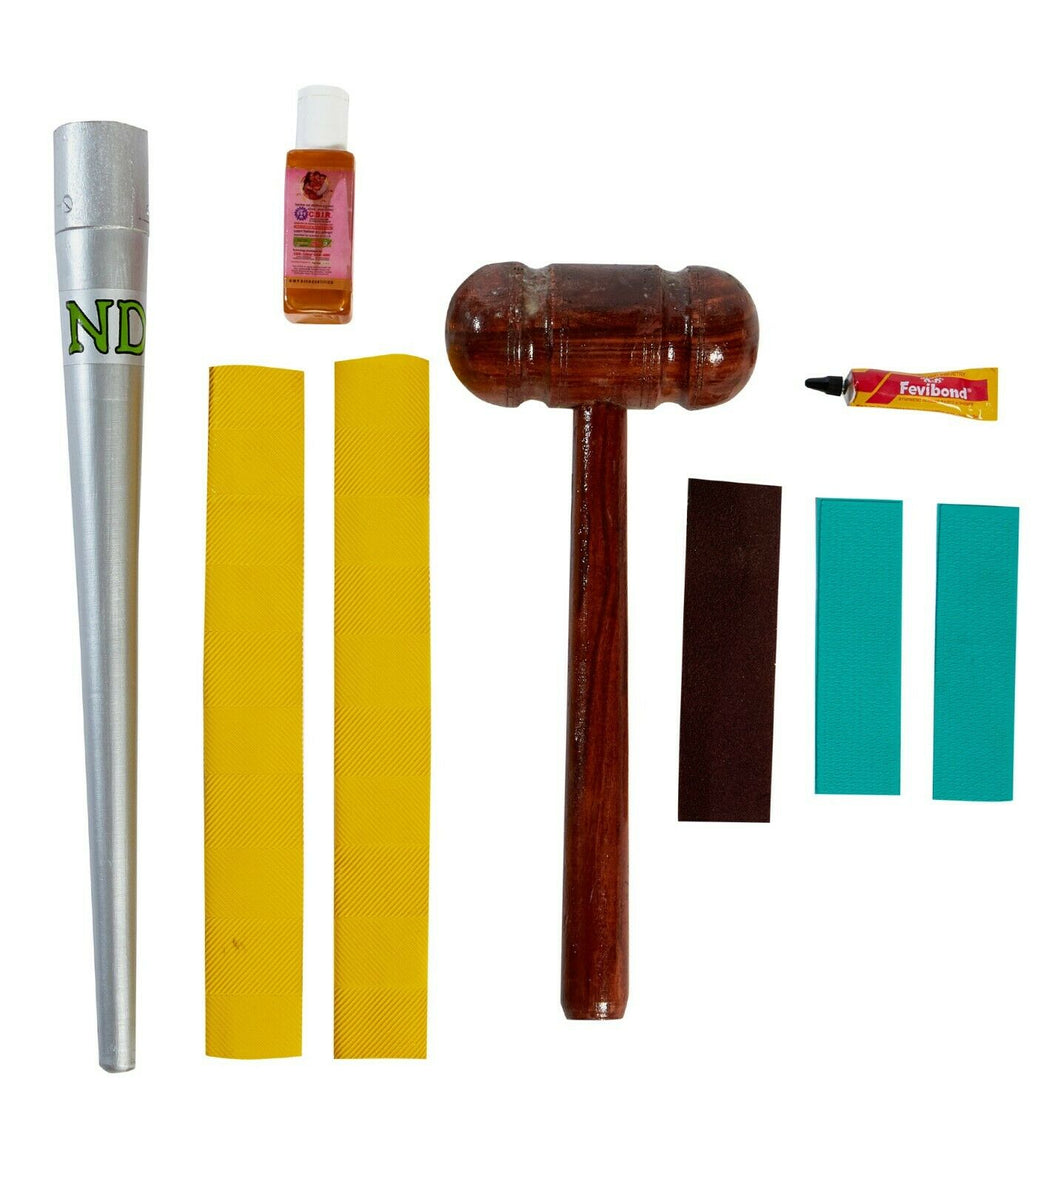 ND Cricket Bat Repair Kit Toe Guard Glue Sand Paper Oil Bat Grip Cone Mallet